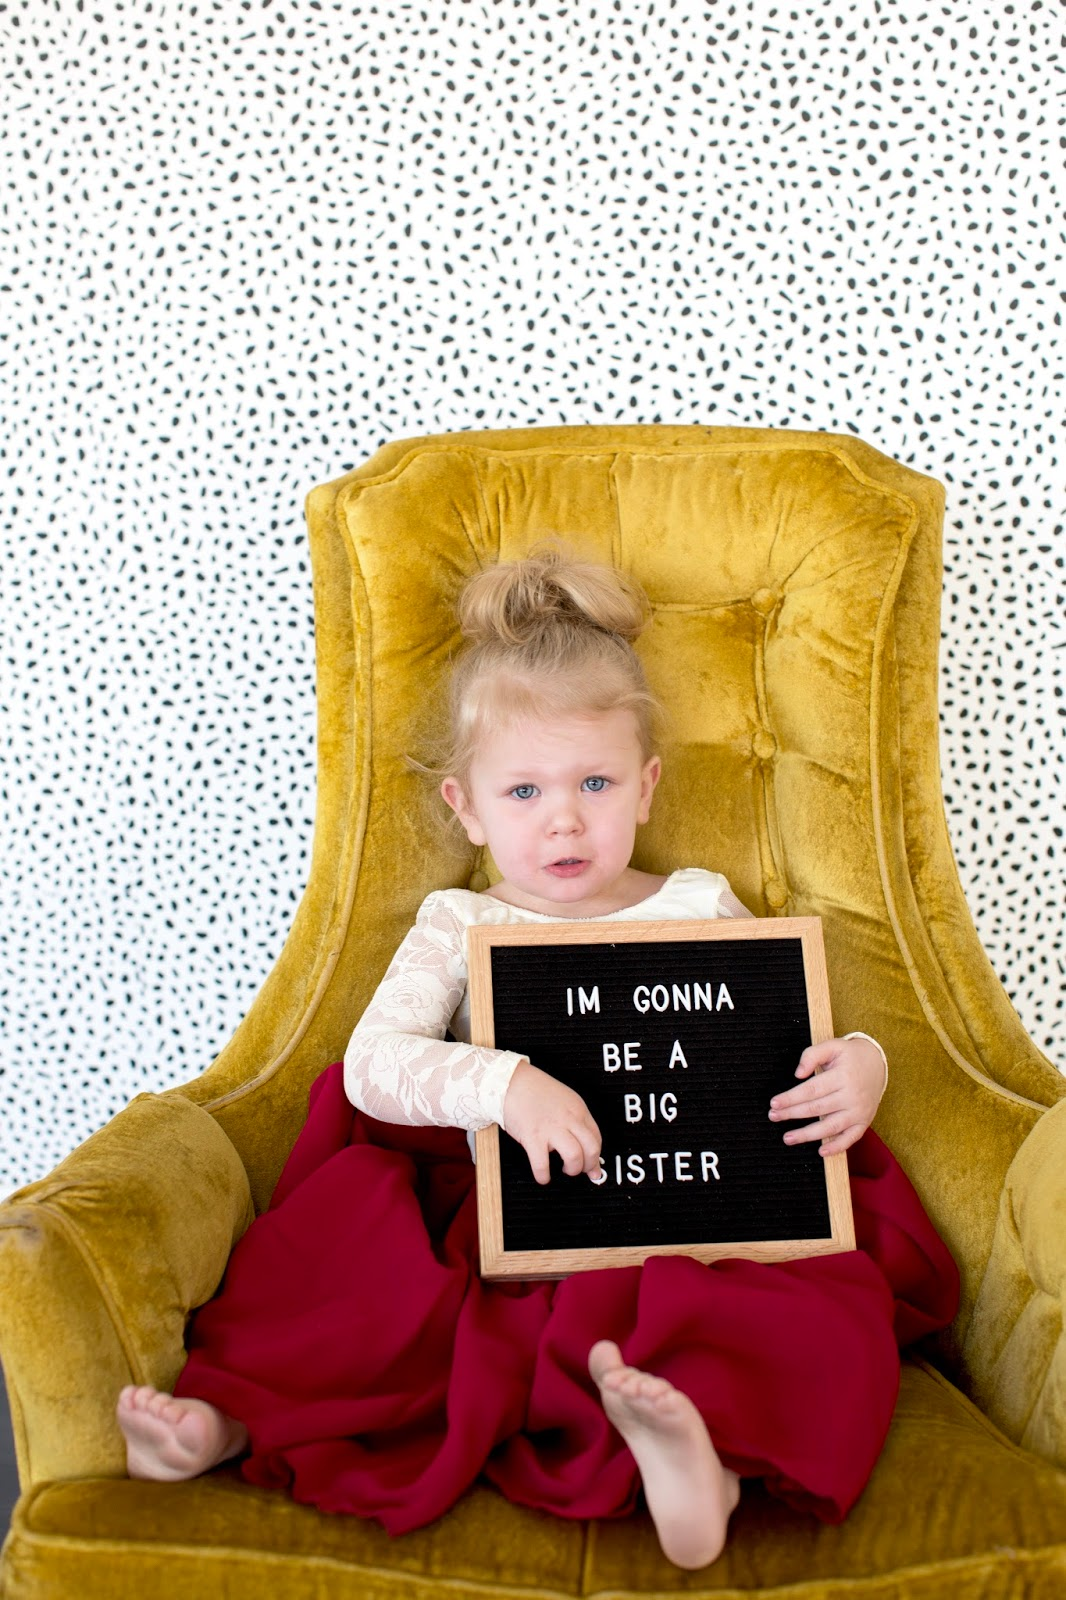 I'm gonna be a big sister, photoshoot, baby announcement